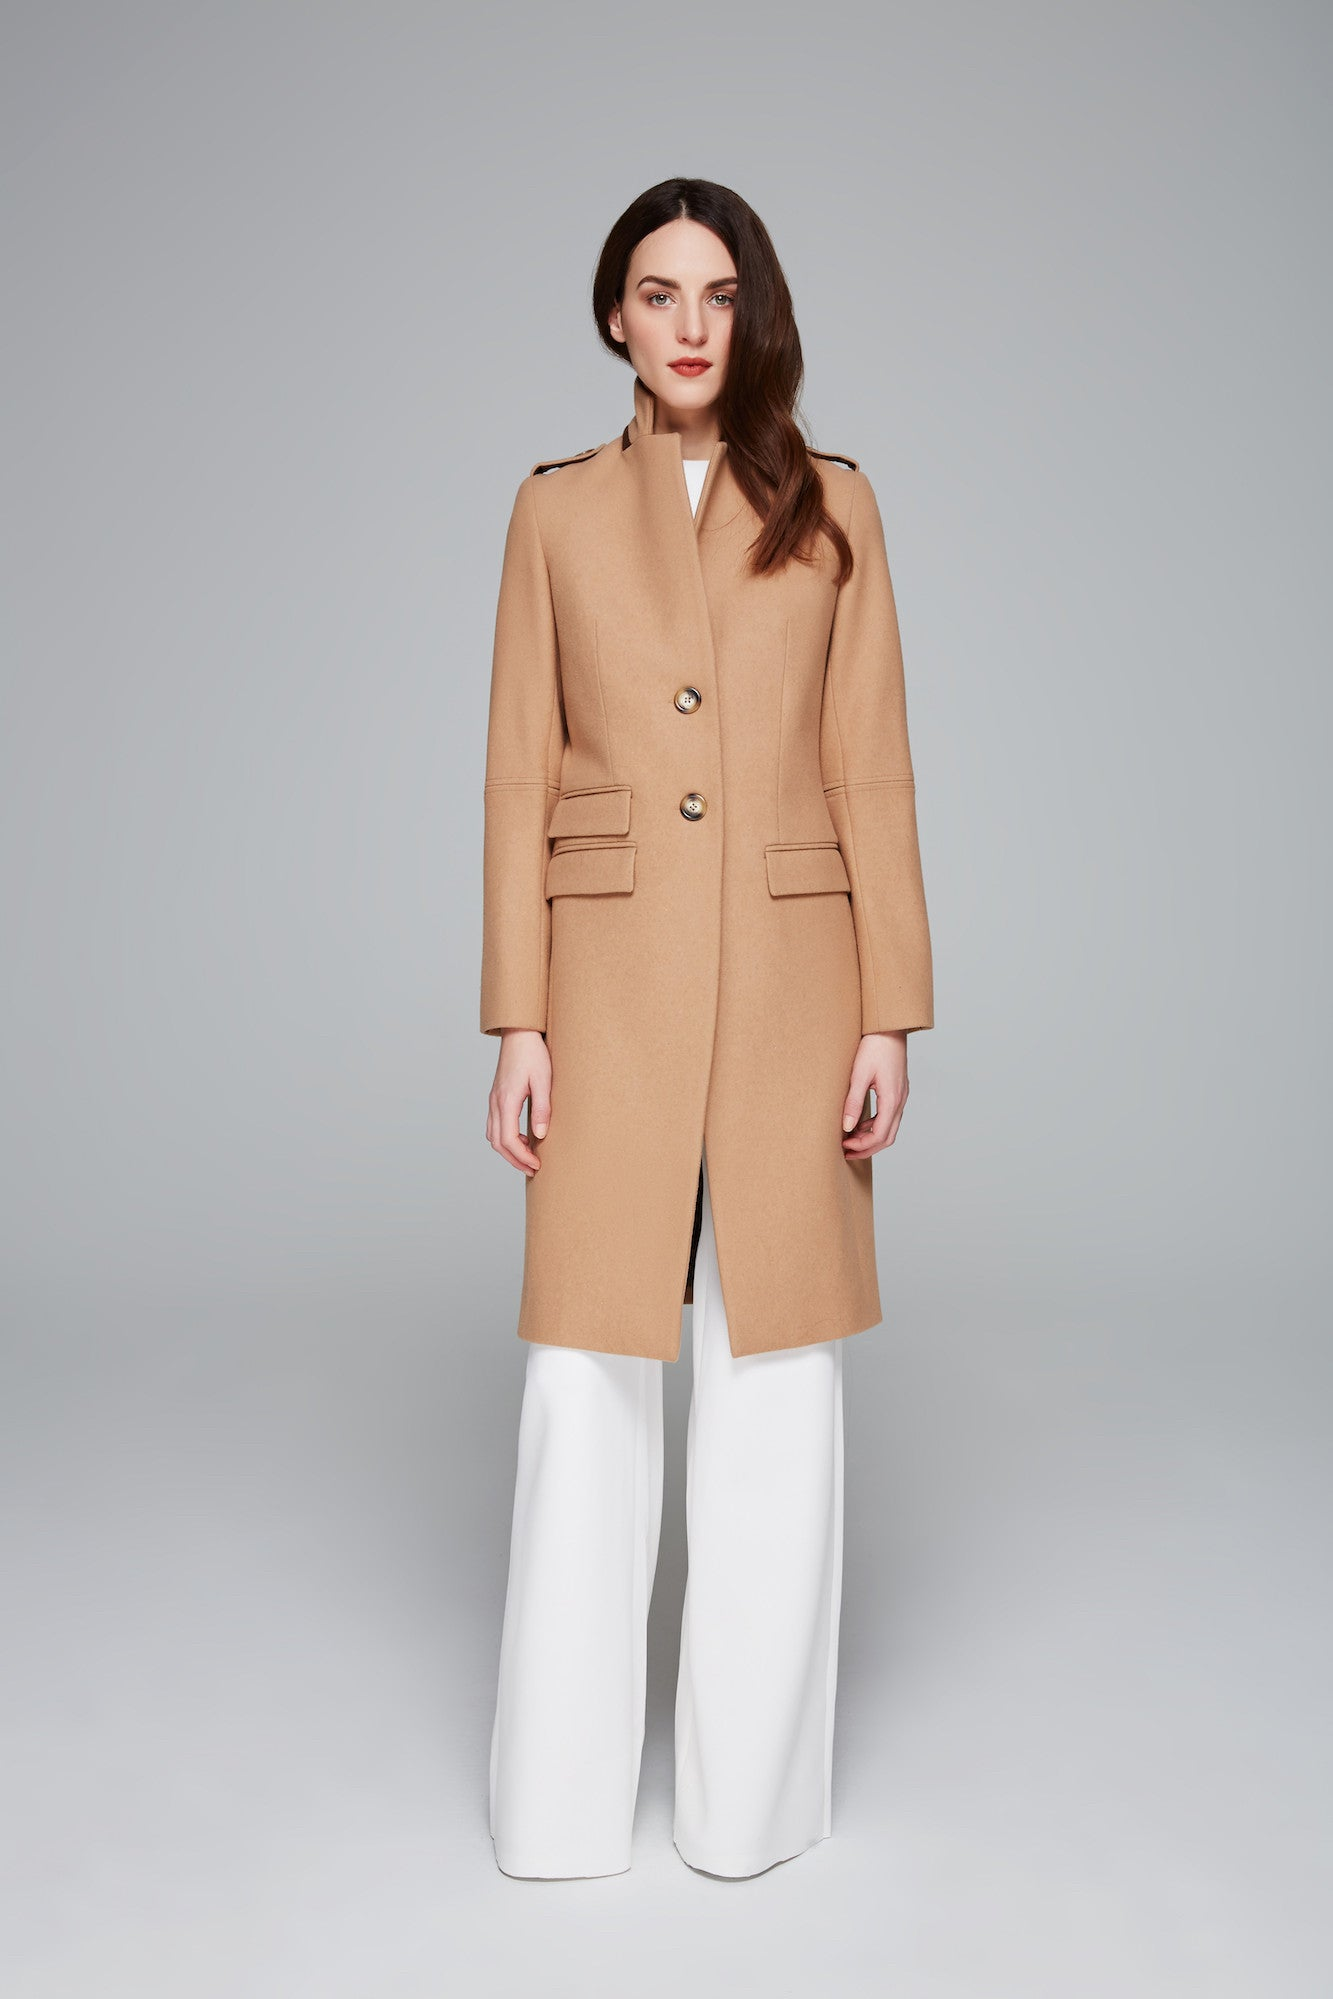 Brisa Felted Wool Coat